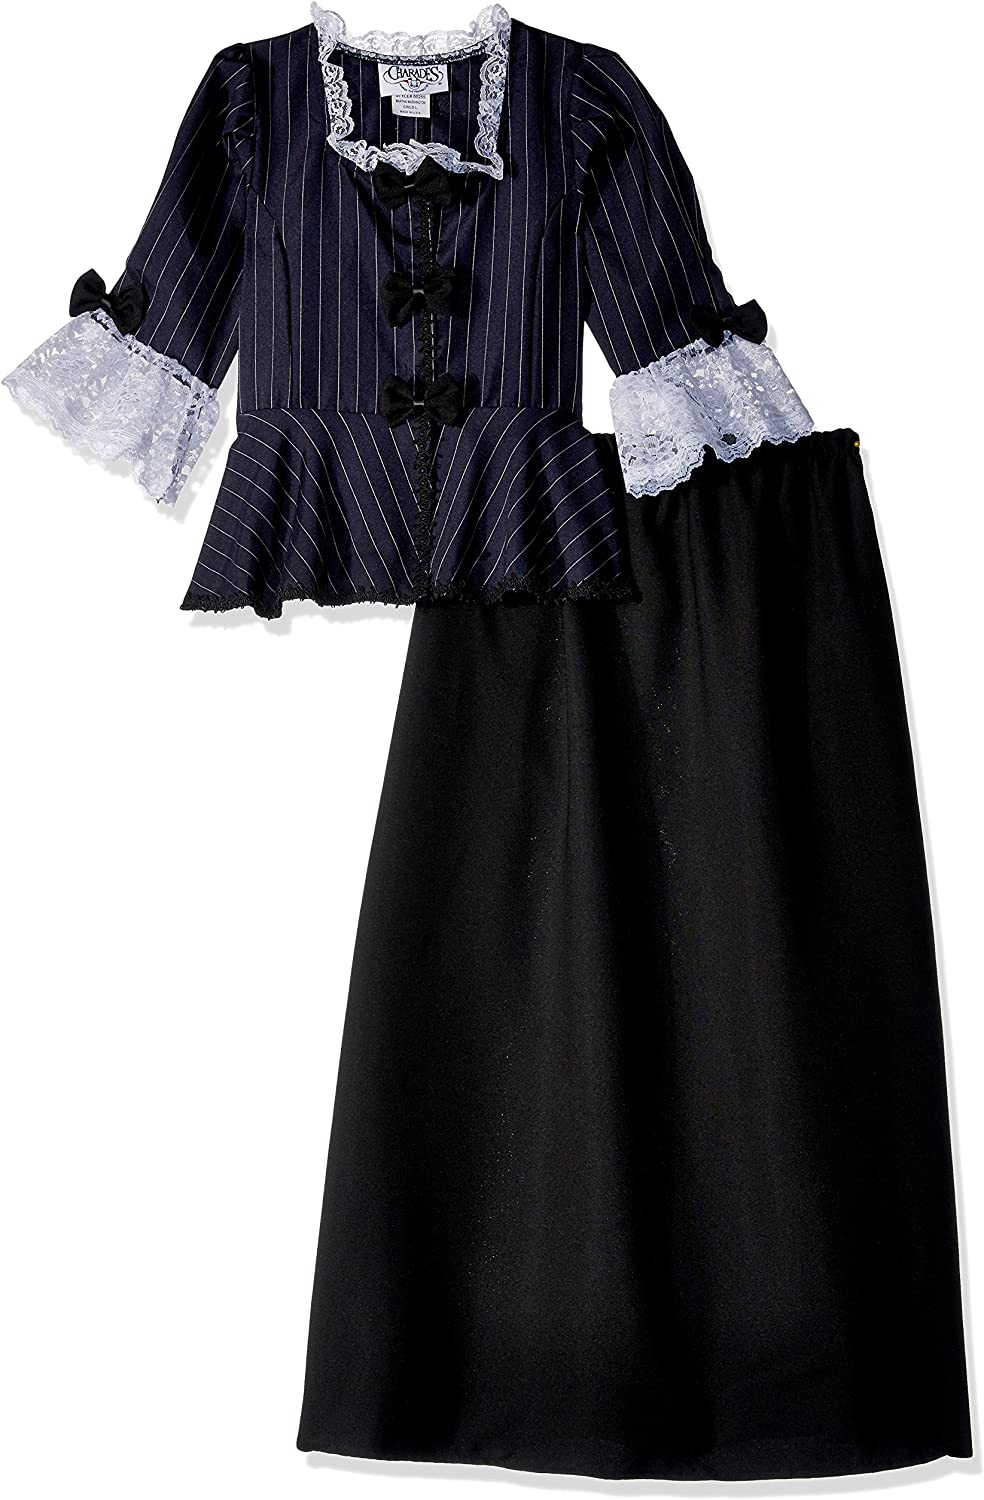 Charades Child's Colonial Girl Costume Dress, Small